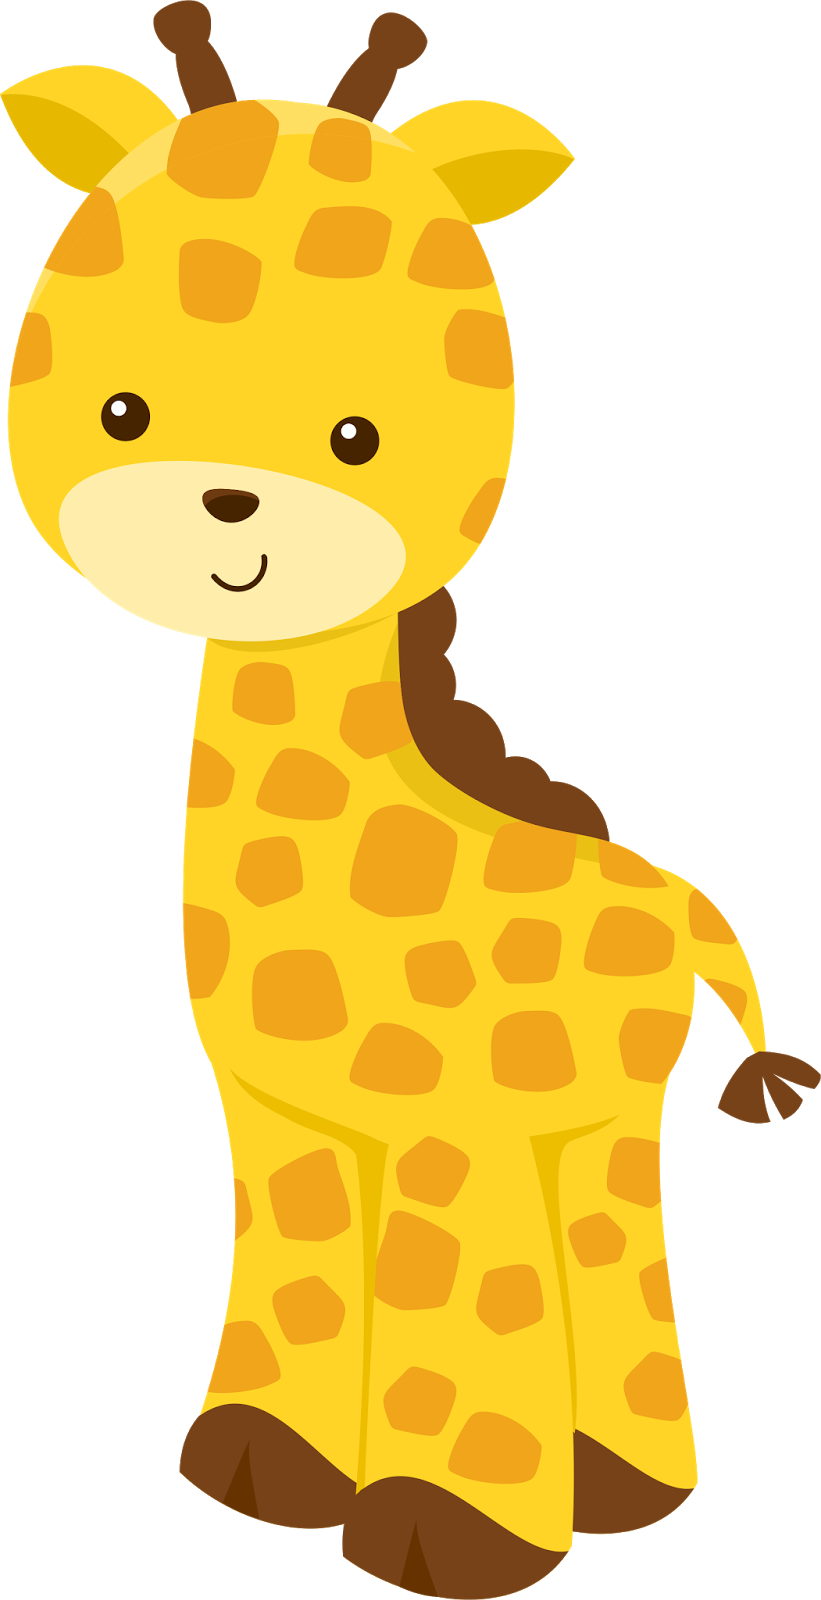 royalty free download Baby jungle animal clipart. Png shower pinterest junglebabyclipartpng